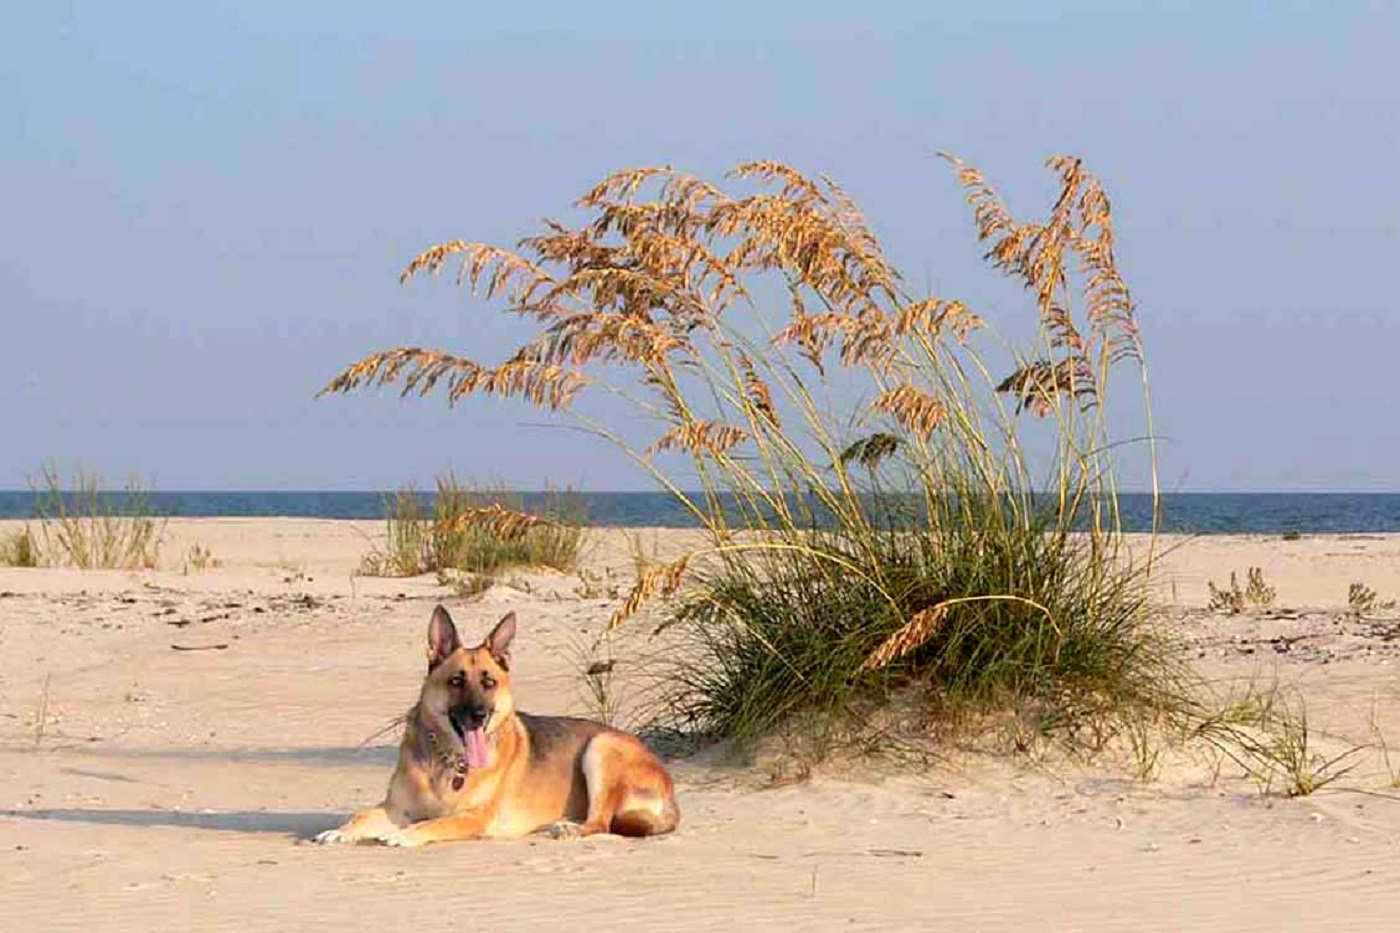 Cape San Blas- One of the Only Pet Friendly Beaches in the U.S.